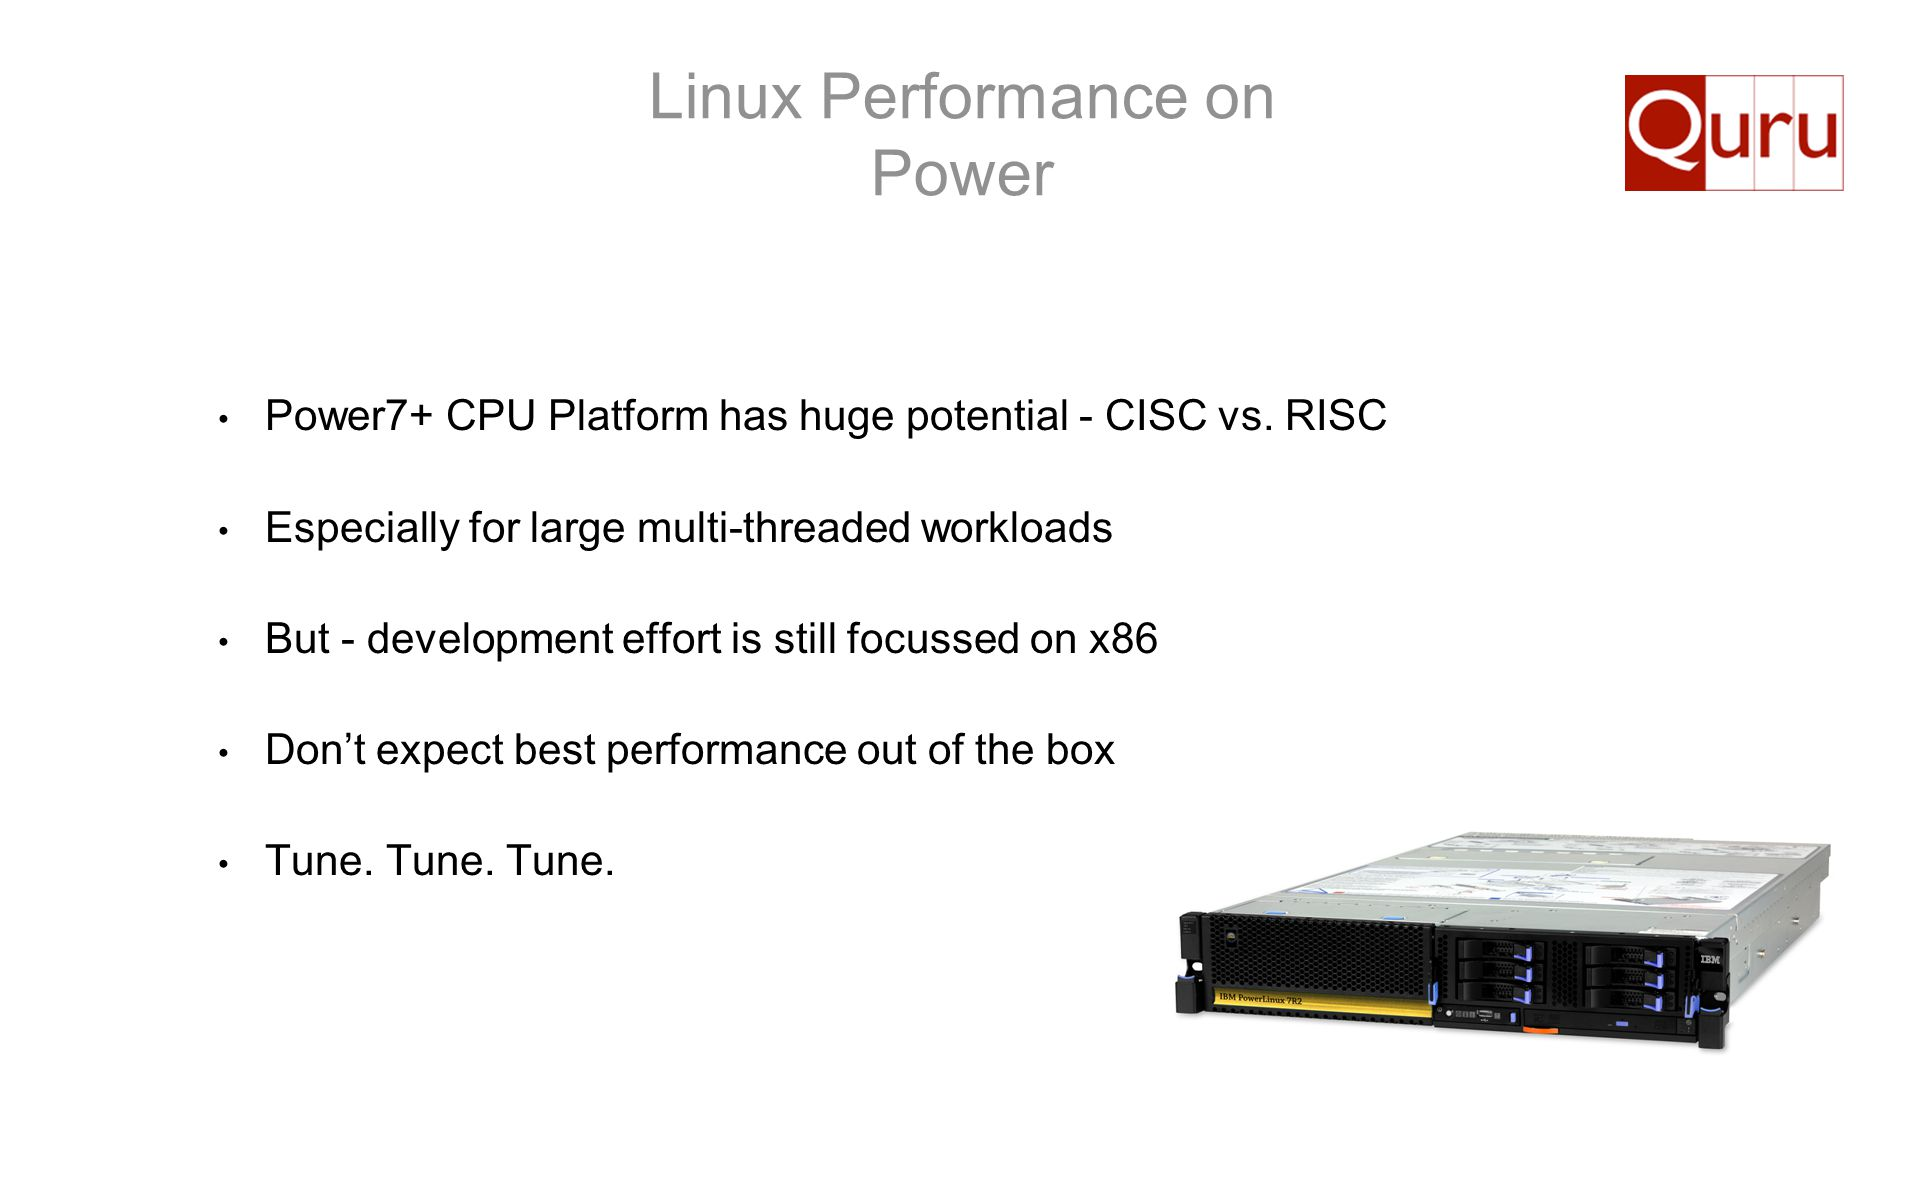 Linux Performance on Power